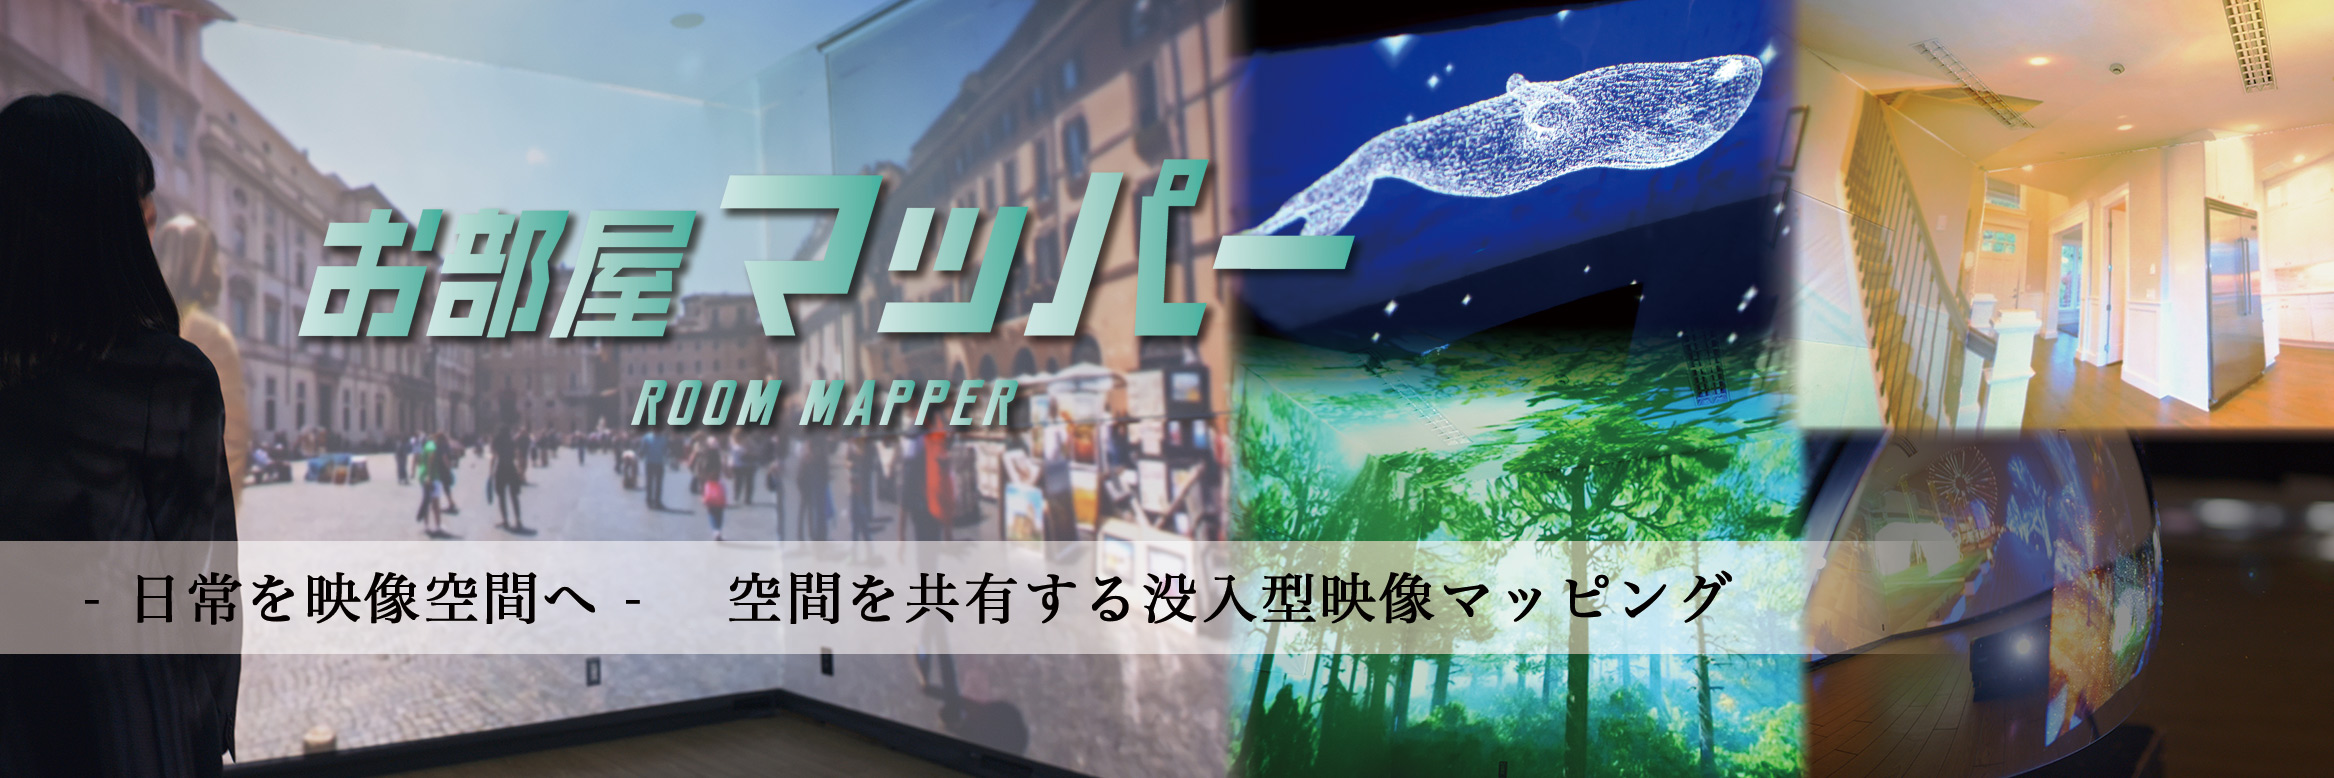 ROOM MAPPER